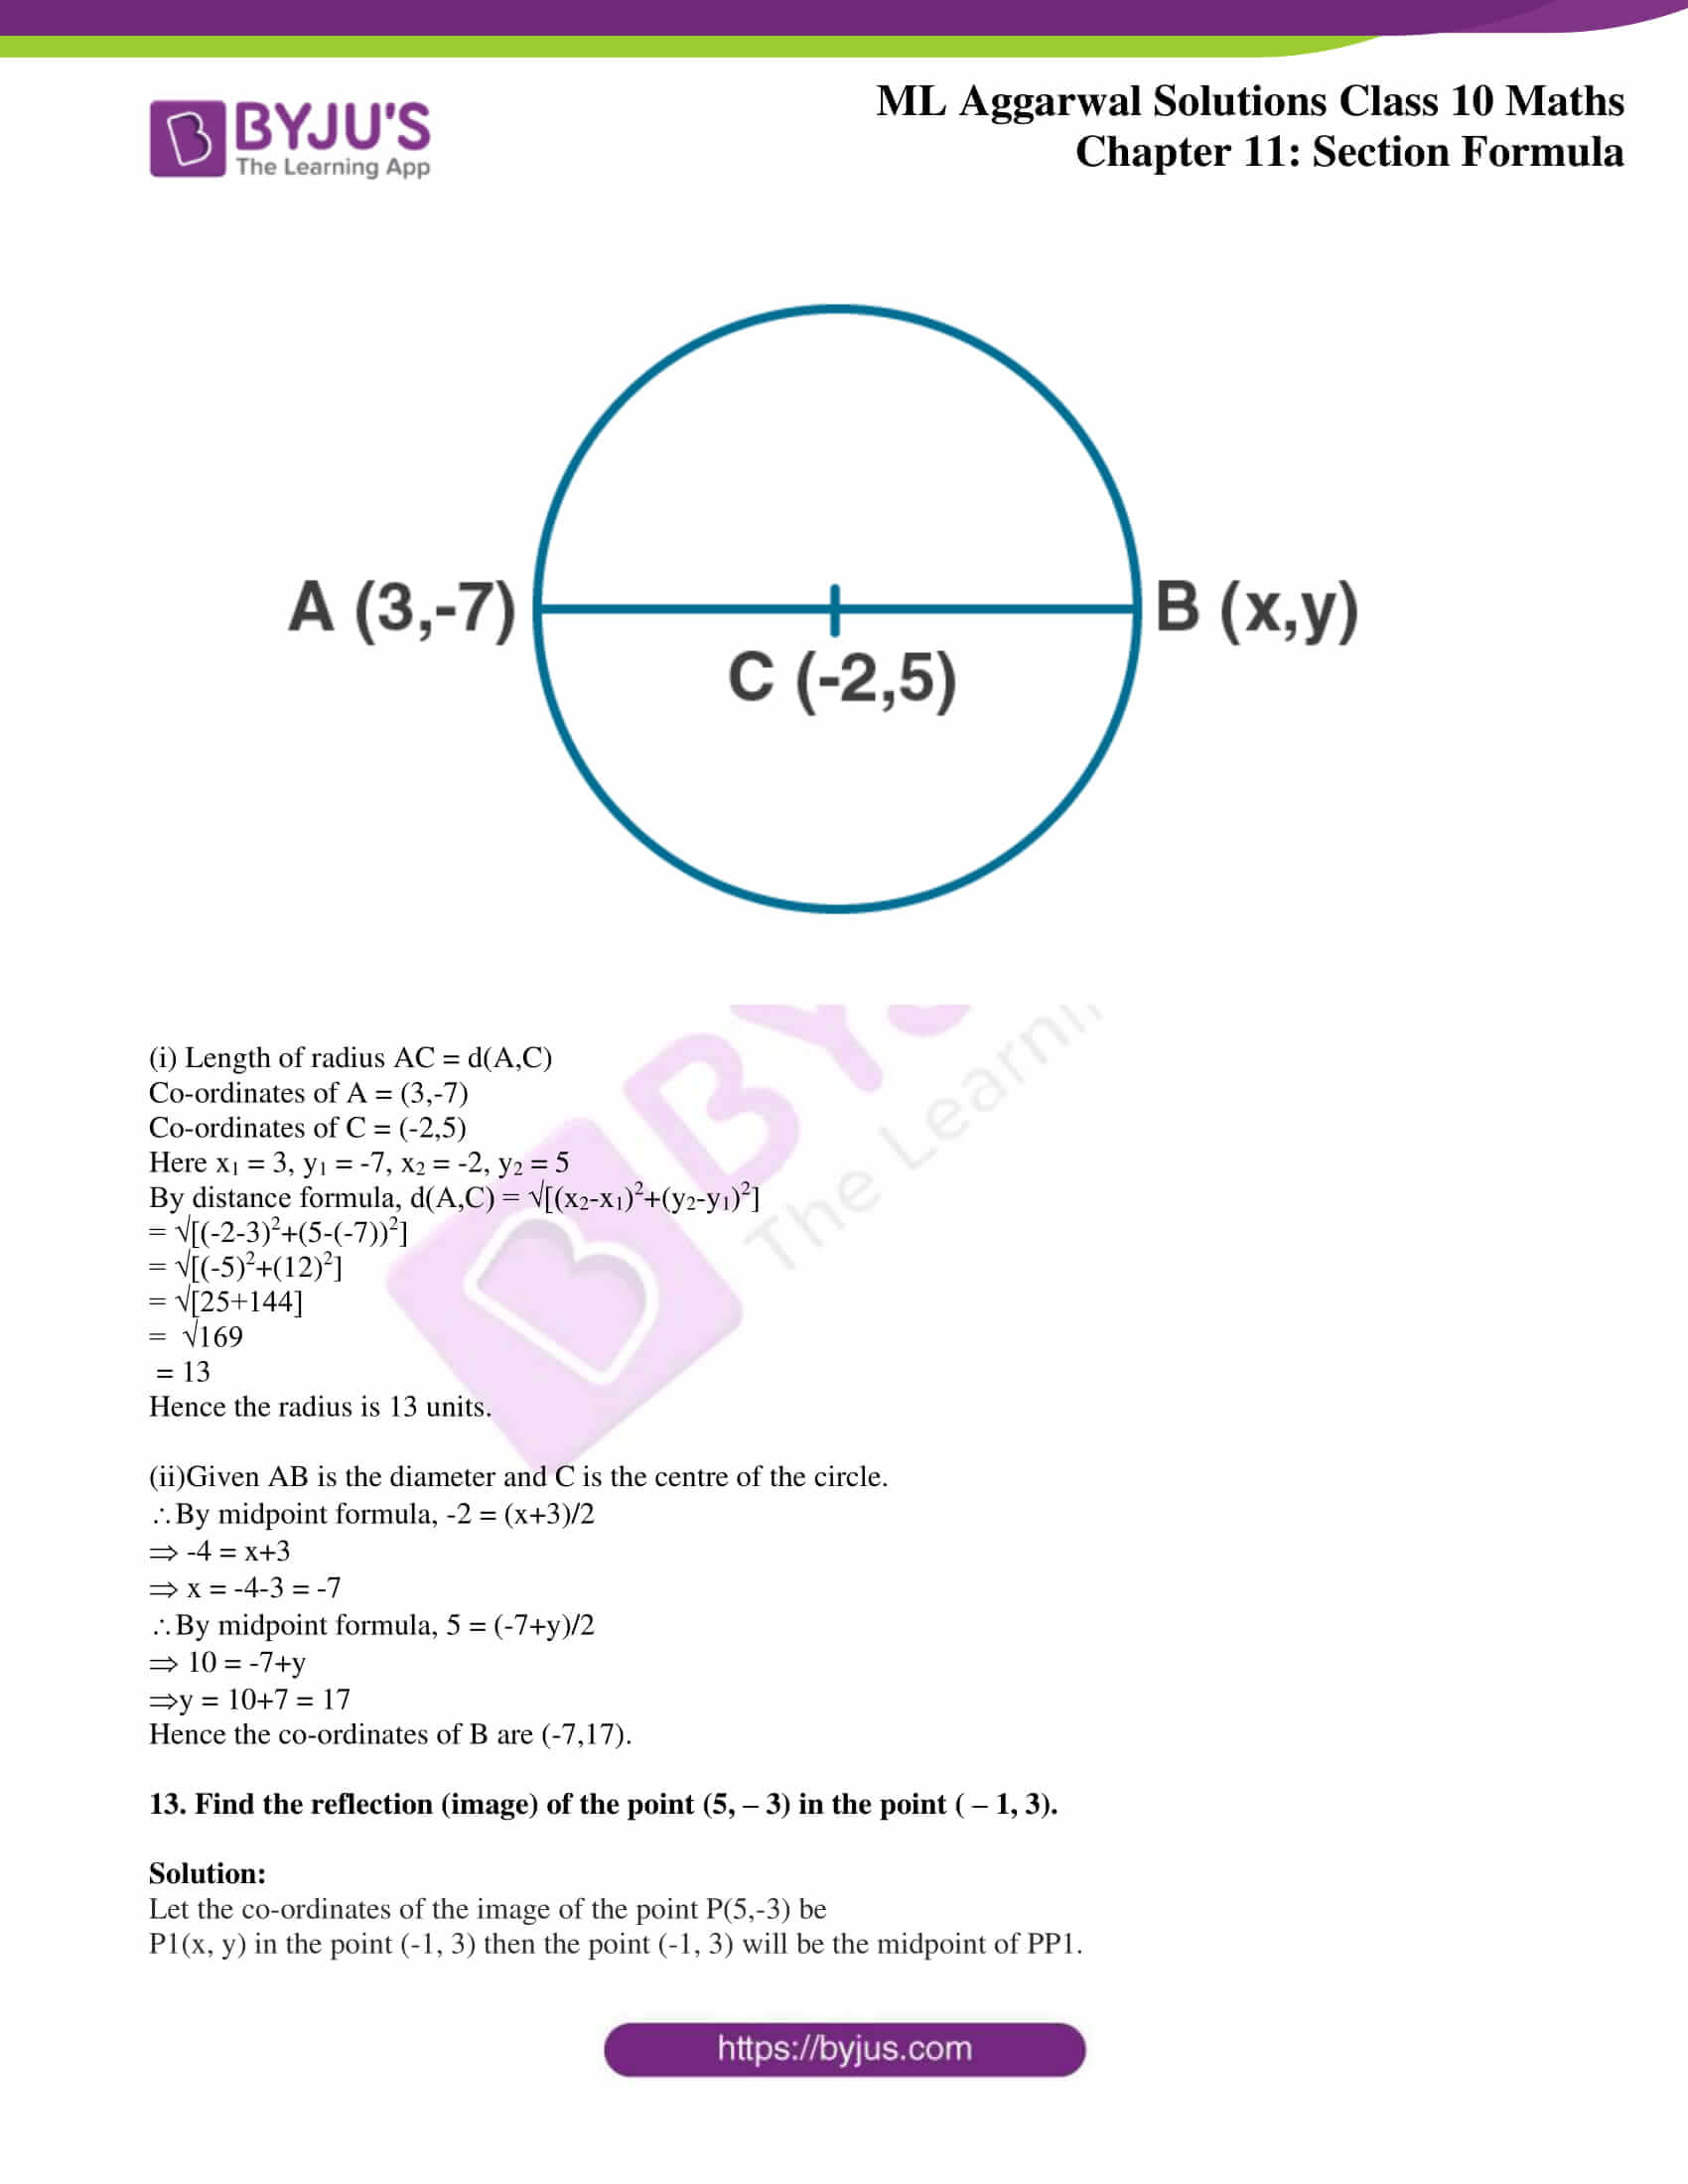 ml aggarwal solutions class 10 maths chapter 11 10